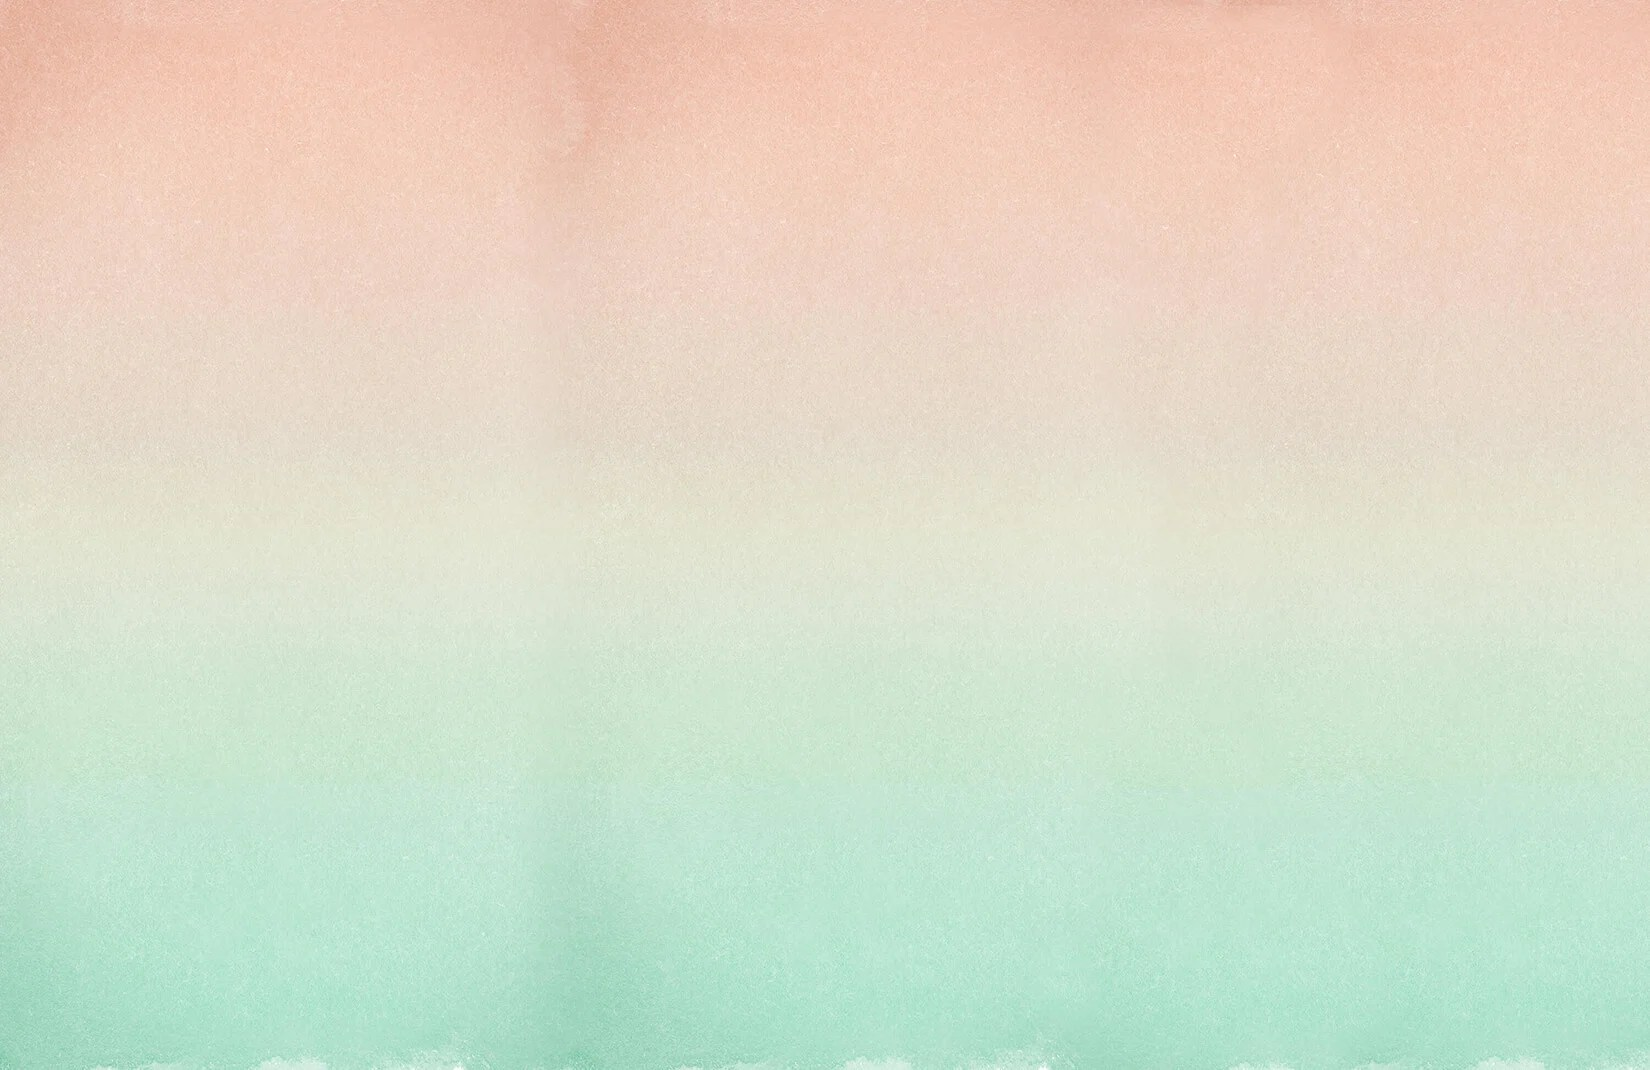 Cute Unicorn Marble Wallpaper For Laptop Peach And Turquoise Fade Ombre Wall Mural